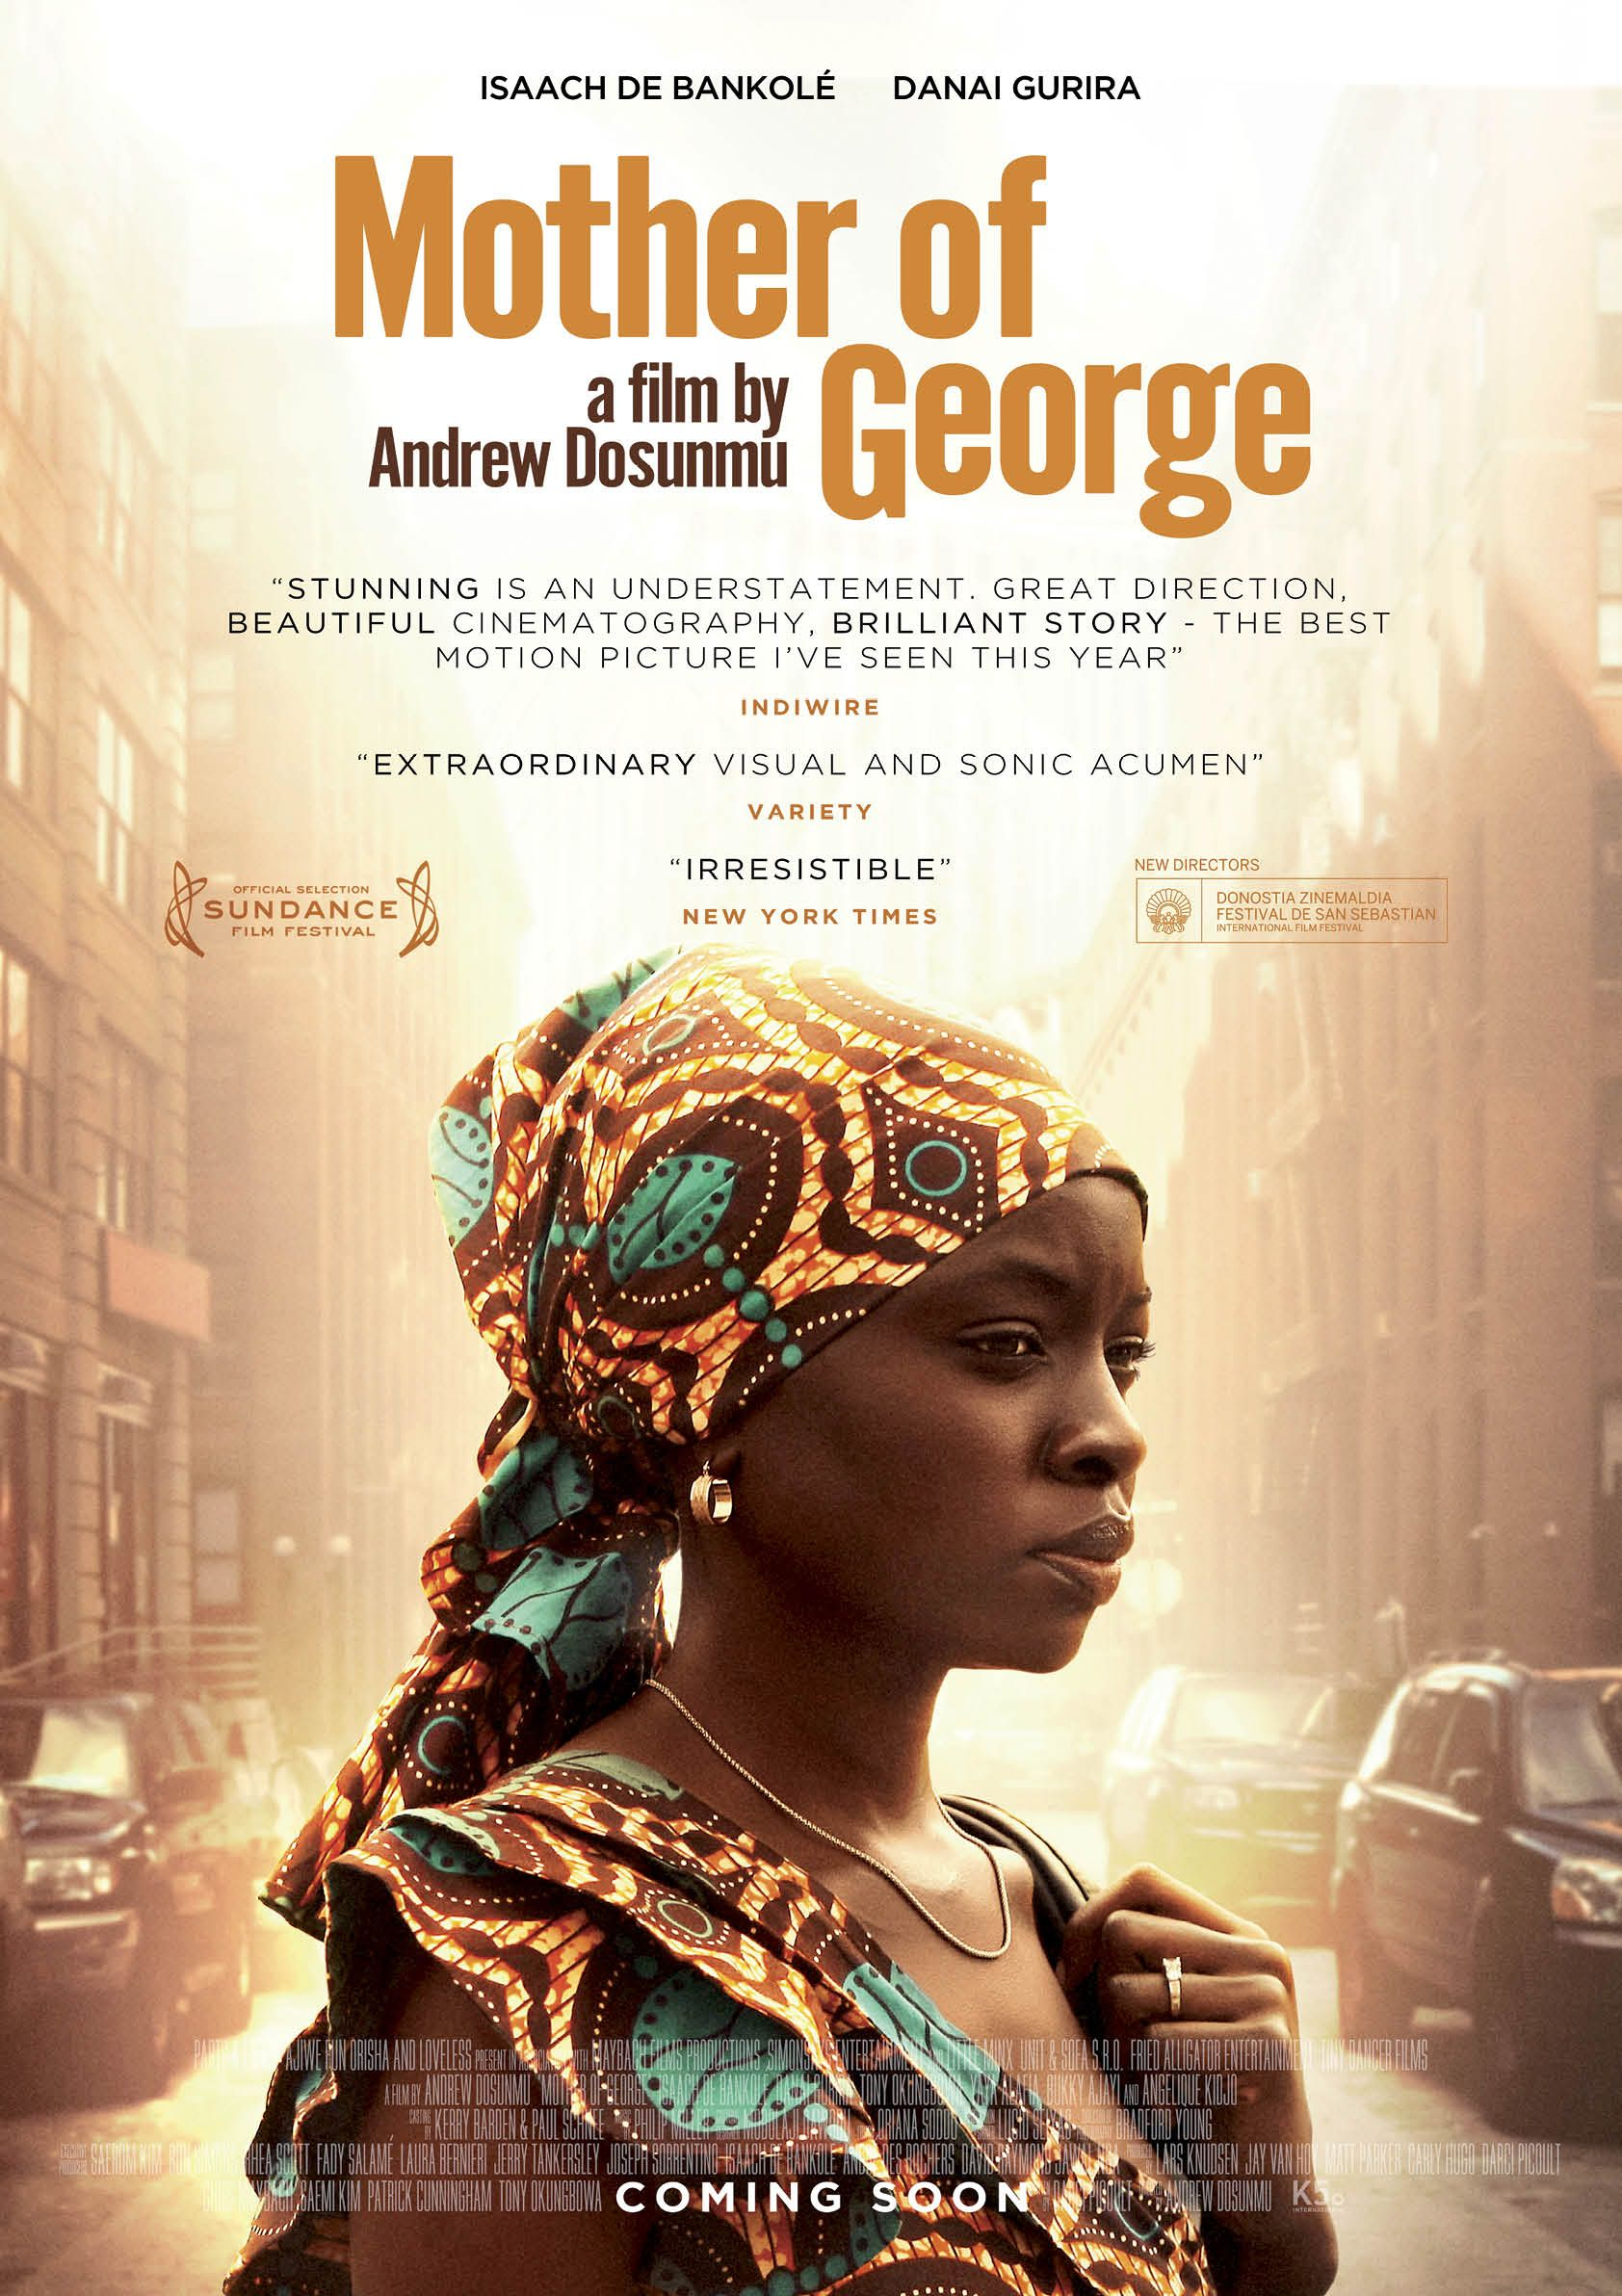 Mother of George stars Adenike and Ayodele (Gurira, De Bankolé) are a Nigerian couple living in Brooklyn. Following the joyous celebration of the their wedding, complications arise out of their inability to conceive a child - a problem that devastates their family and defies cultural expectations, leading Adenike to make a shocking decision that could either save her family or destroy it. Acclaimed director Andrew Dosumnu (Restless City)